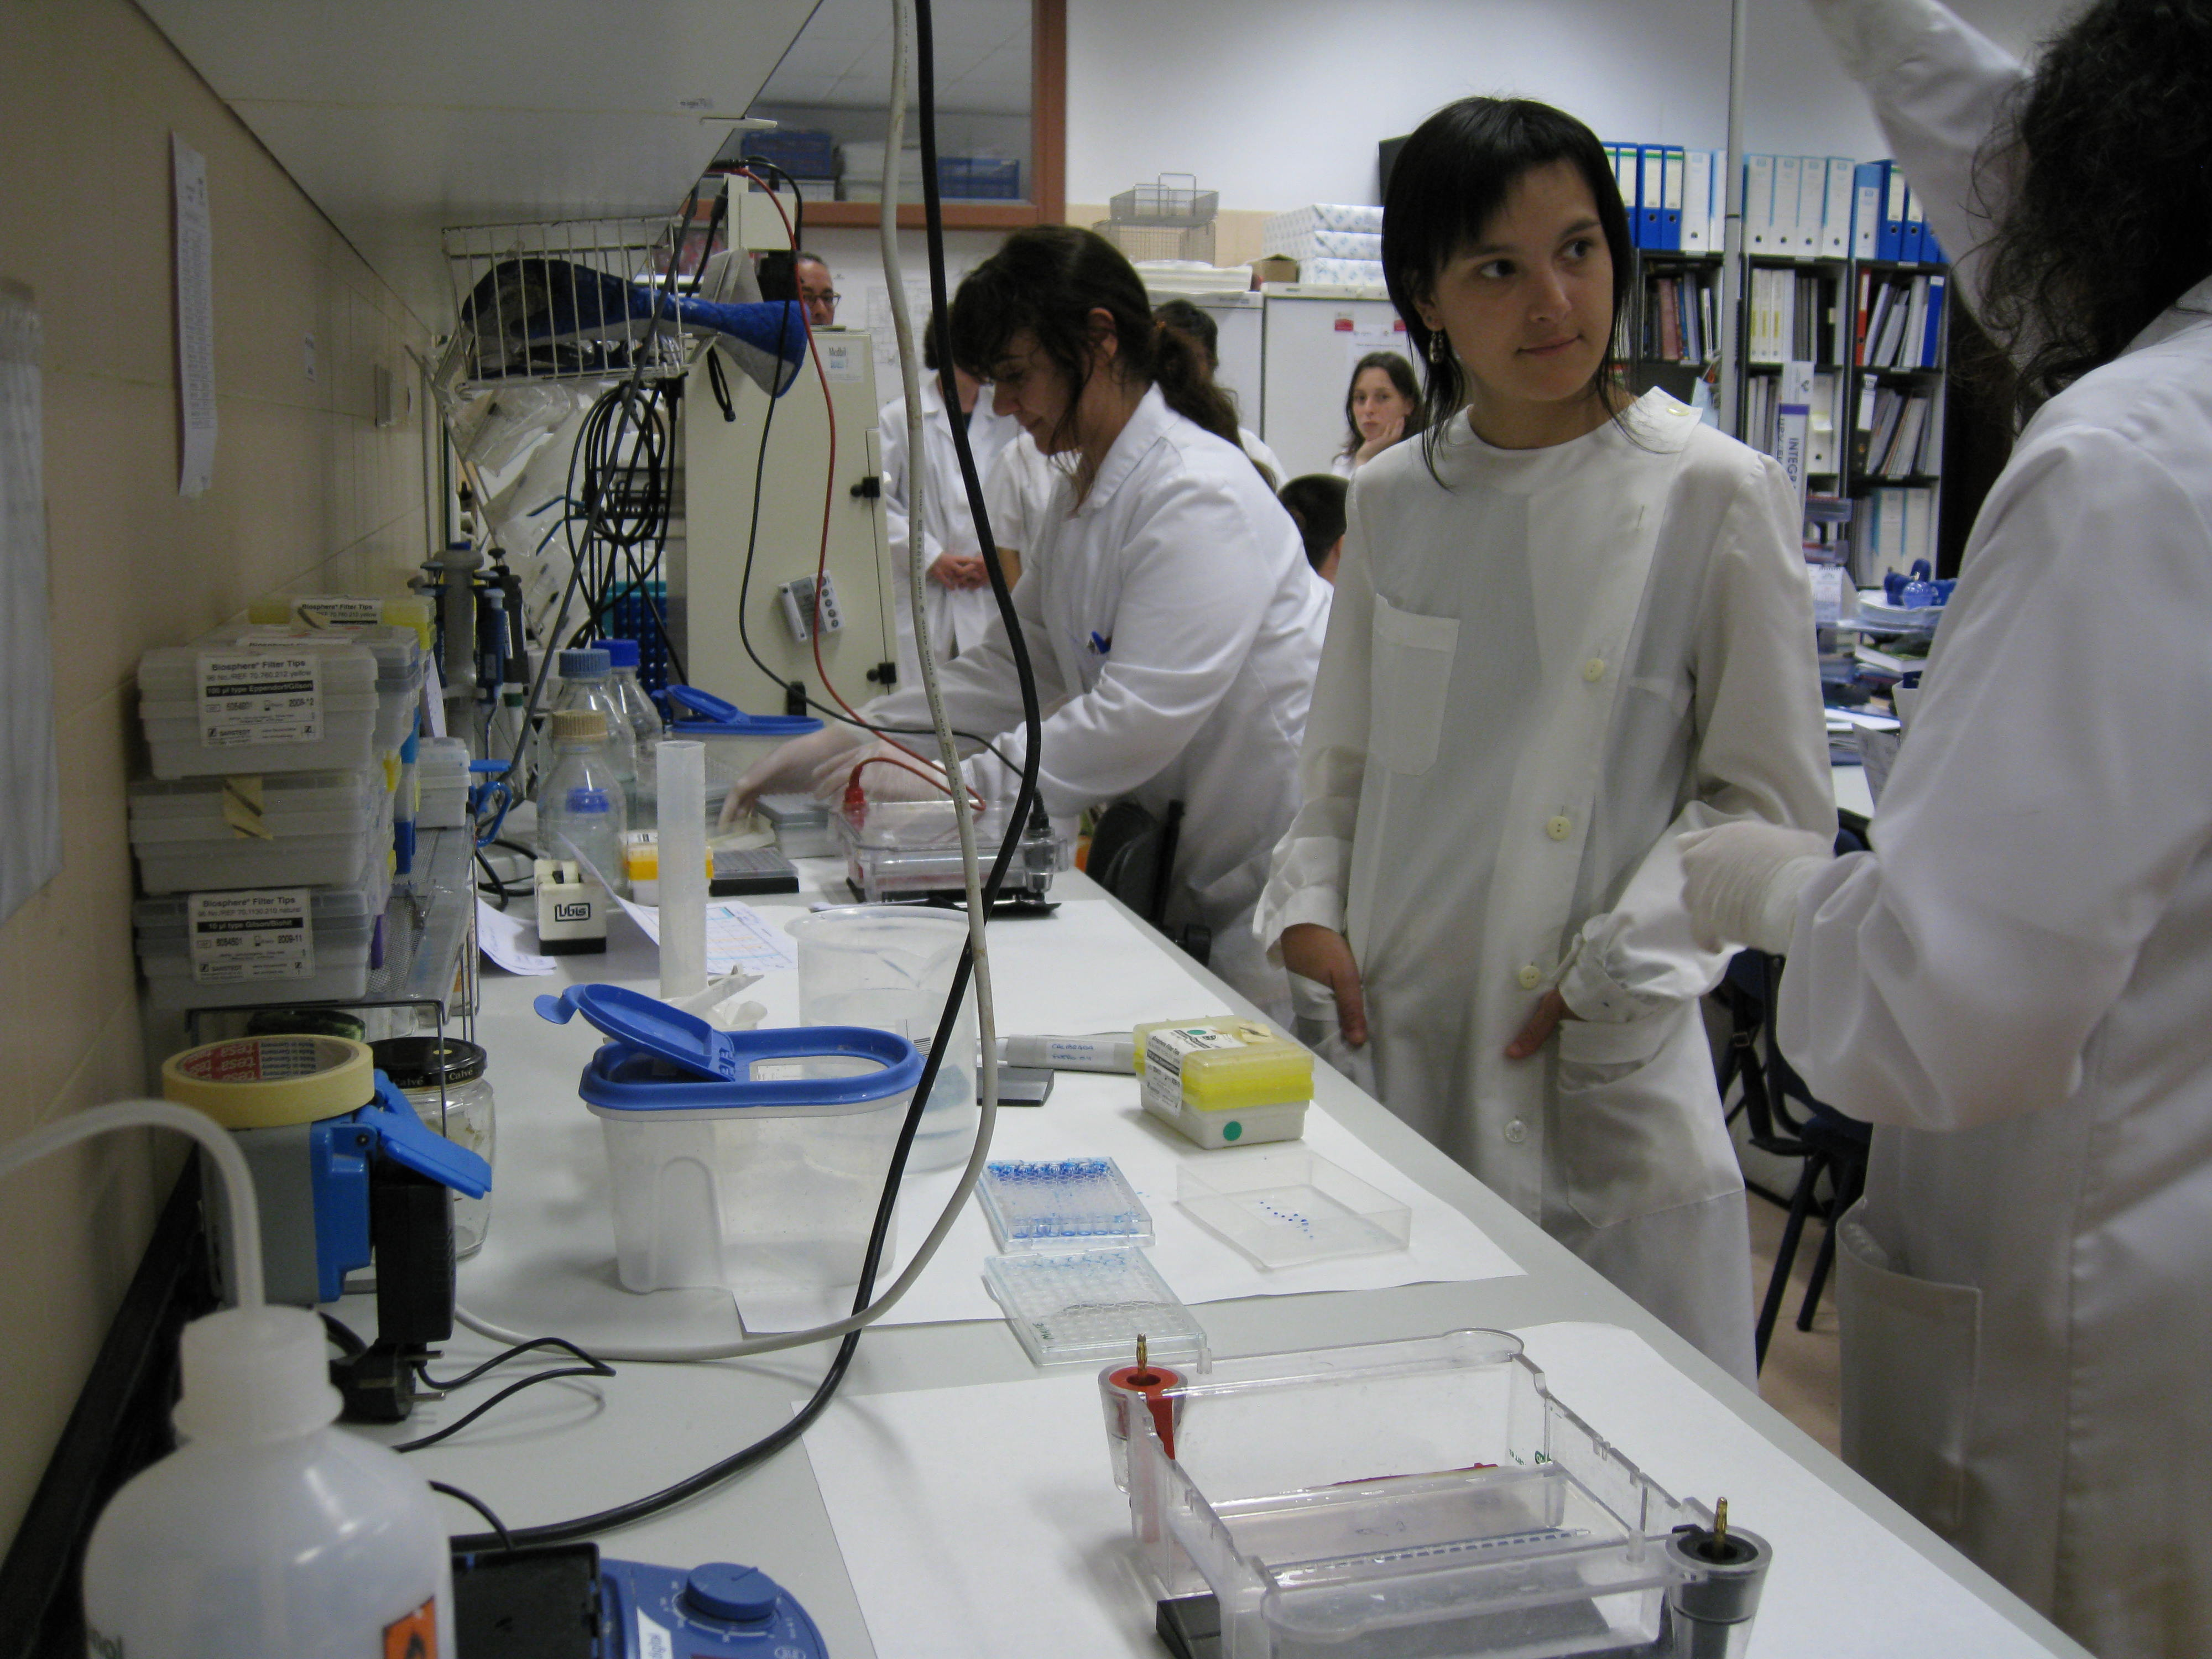 Workers in white suit at lab table with instruments